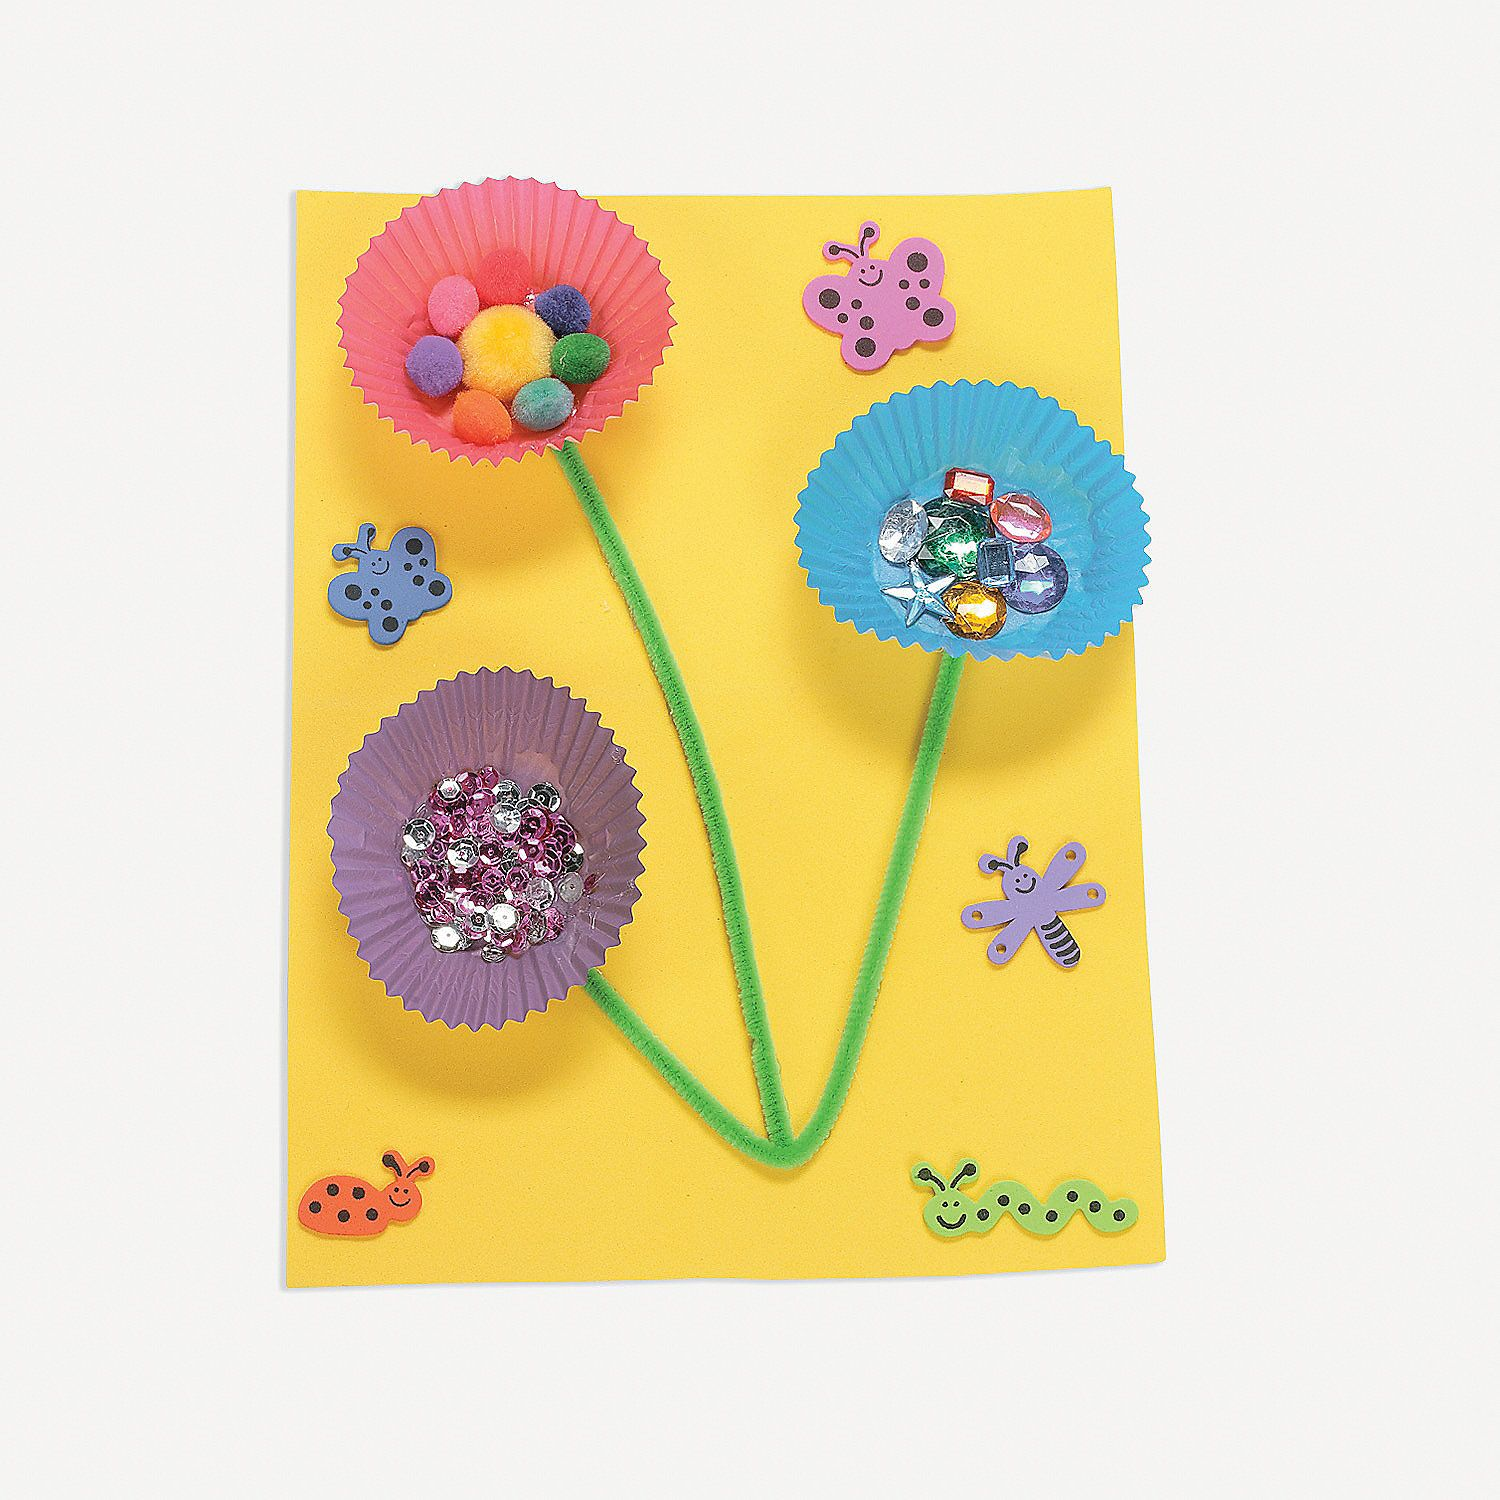 Featured 5 Spring Projects: Multi-Media Baking Cup Flowers